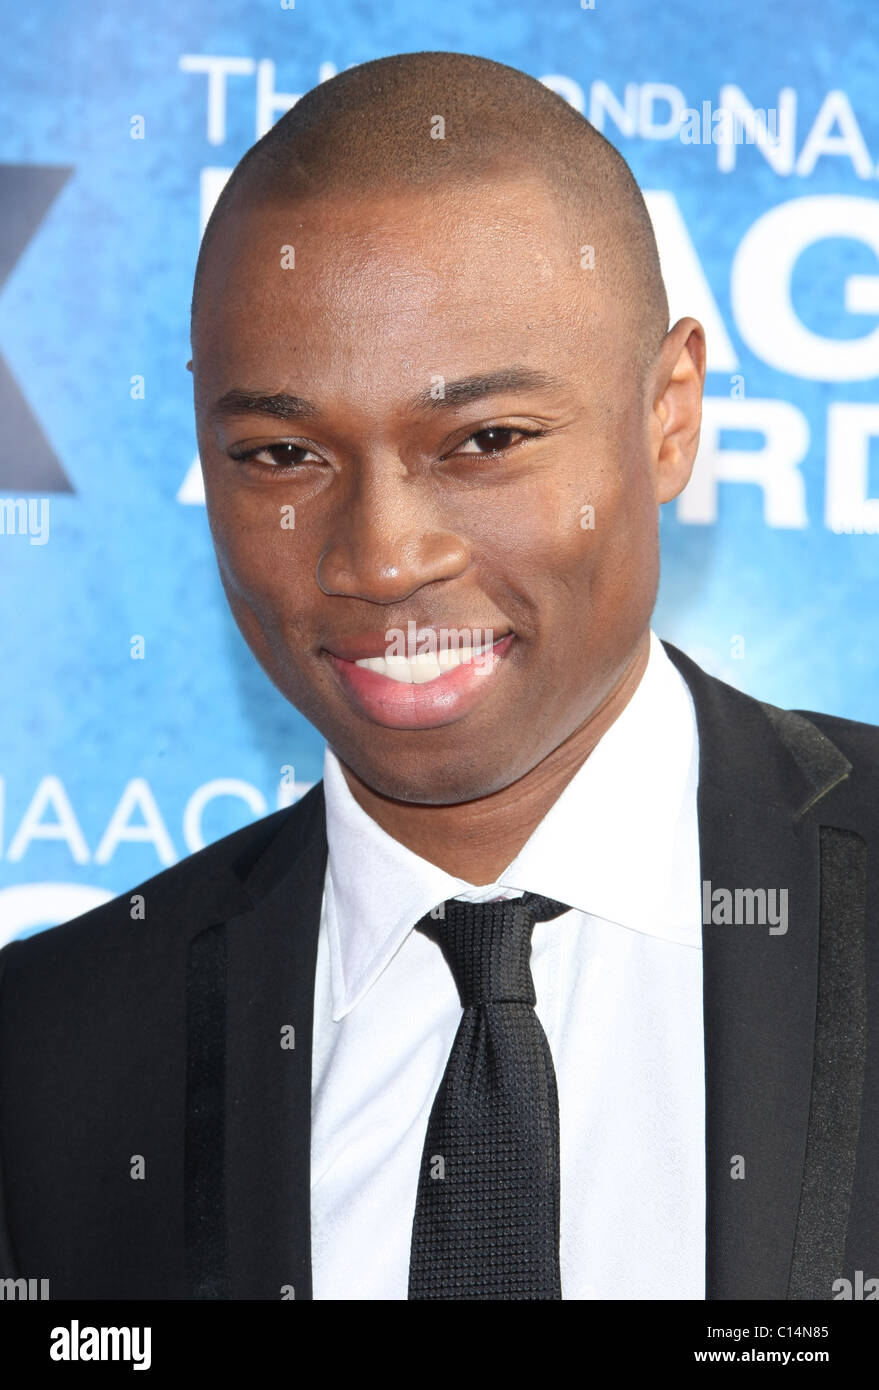 ROBBIE JONES 42ND NAACP IMAGE AWARDS ARRIVALS DOWNTOWN LOS ANGELES CALIFORNIA USA 04 March 2011 - Stock Image